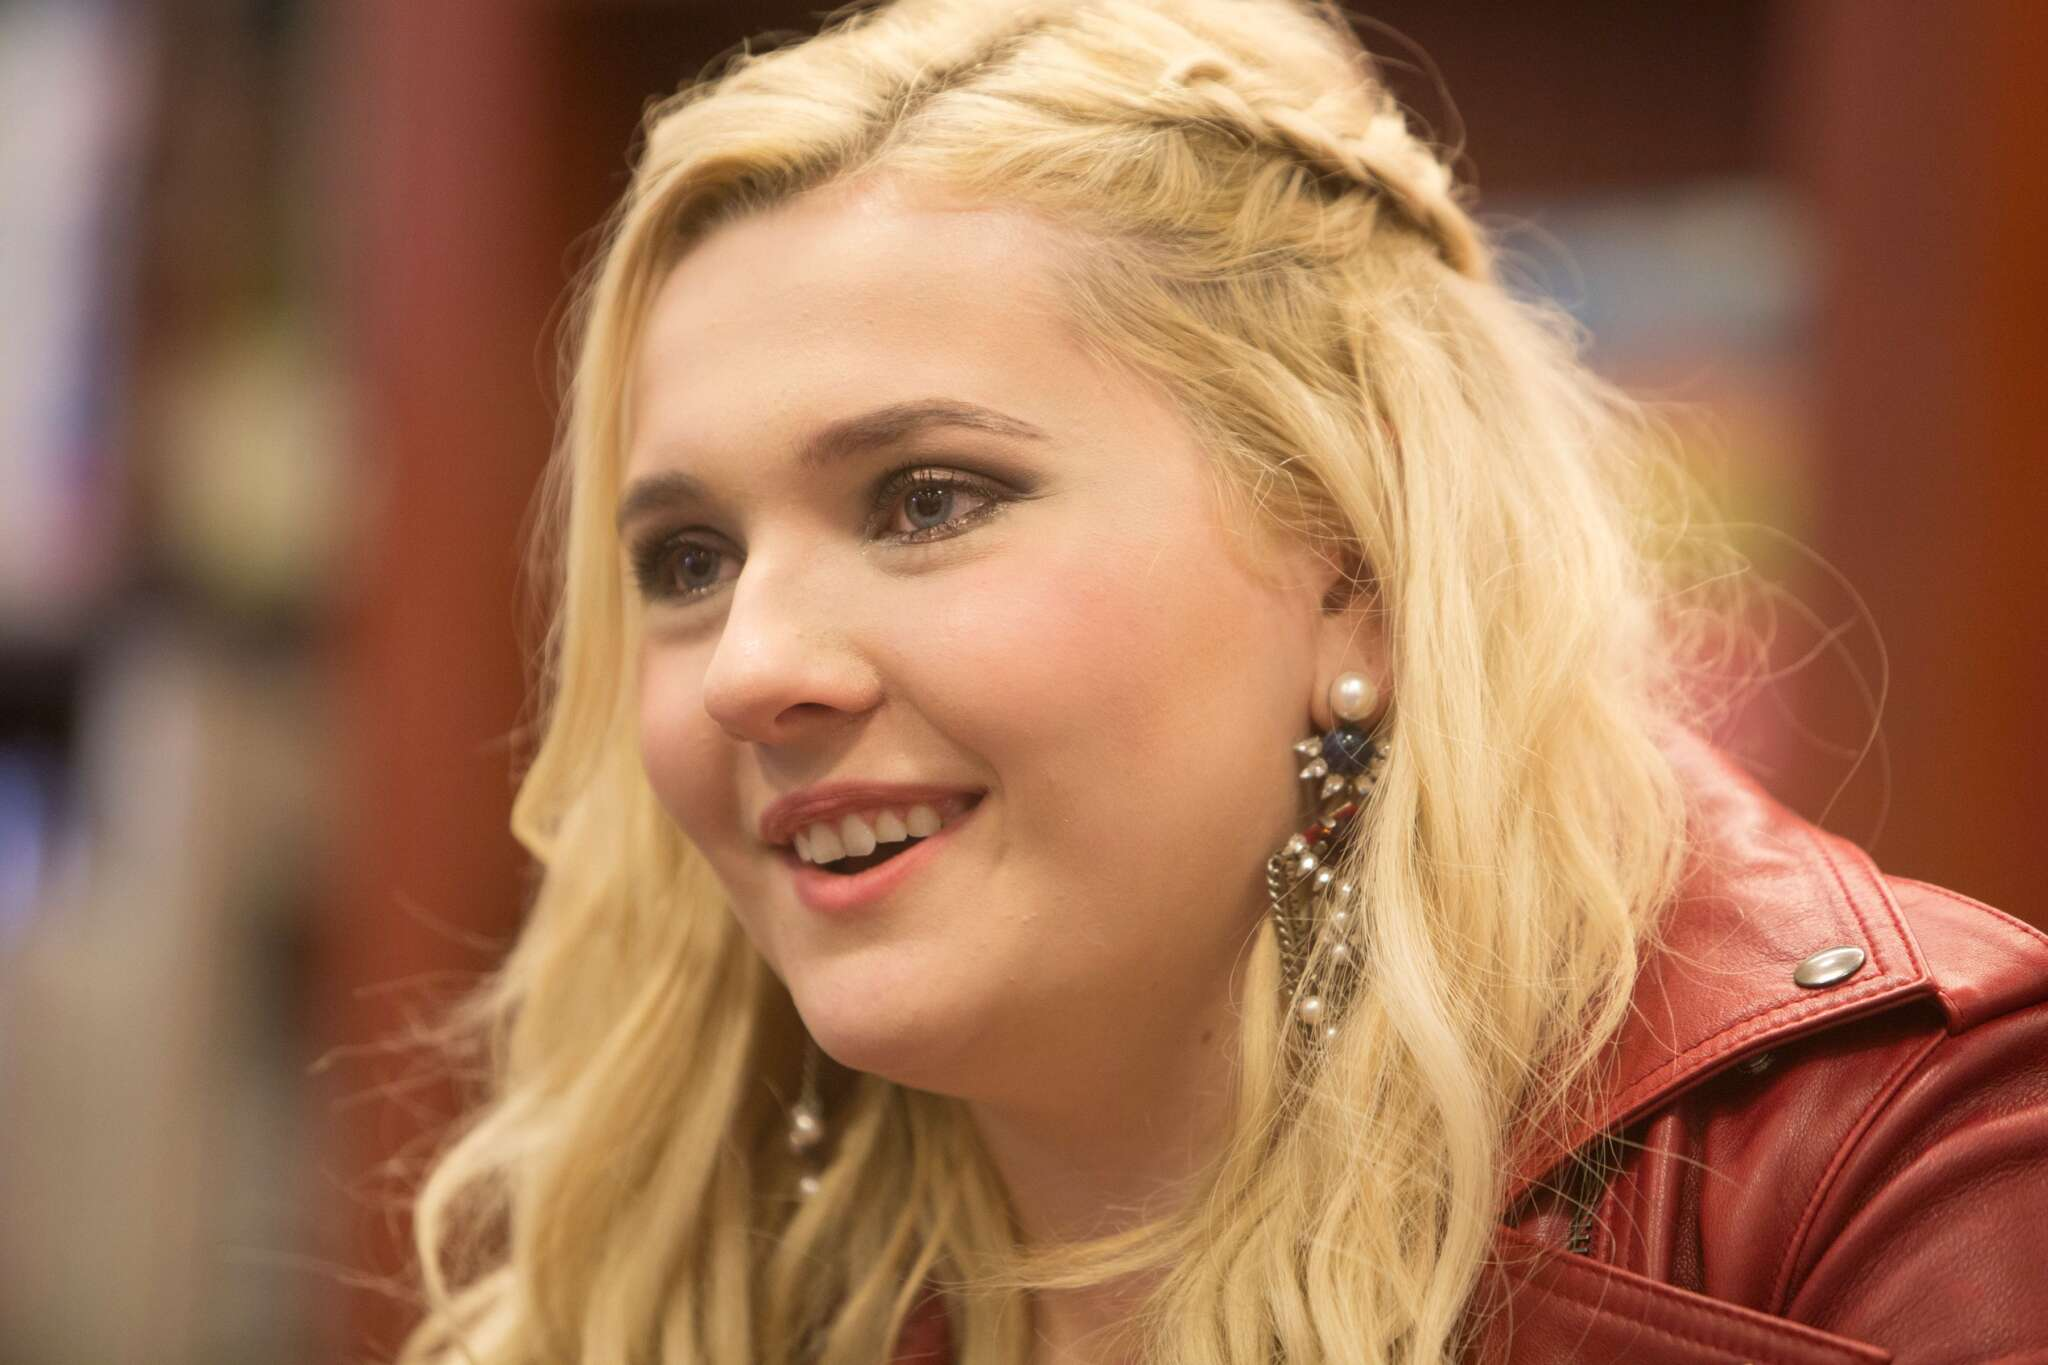 abigail-breslin-claps-back-at-disgusting-covid-19-comment-while-her-father-is-struggling-to-survive